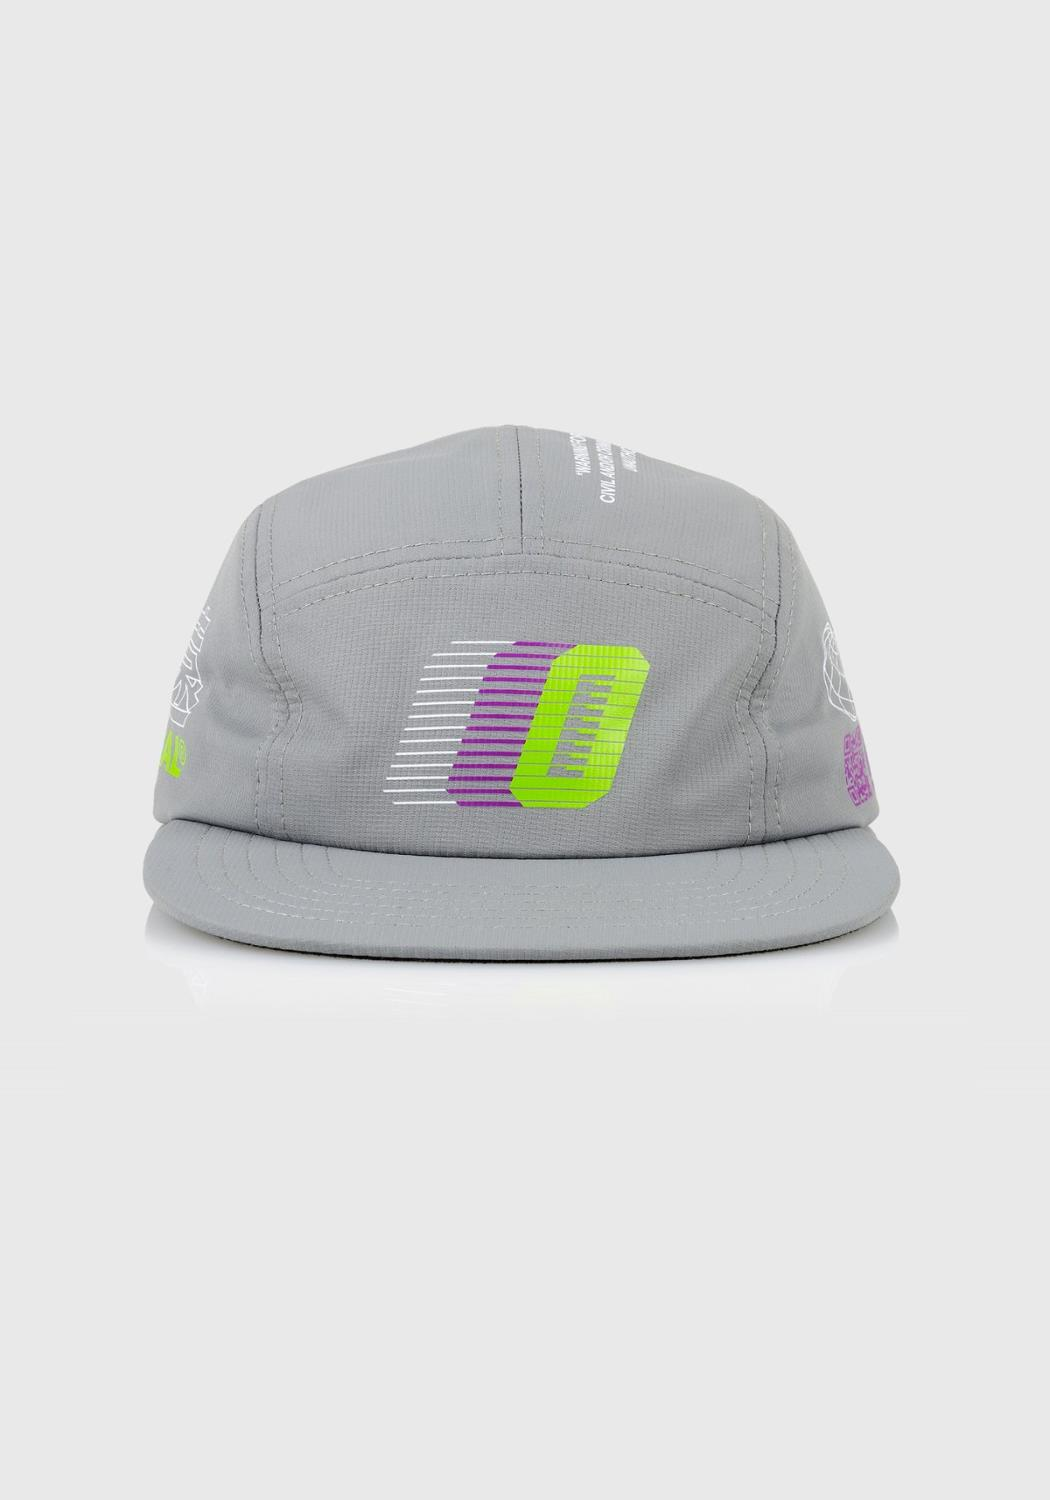 OFFICIAL - Forever Ofcl Camper Hat